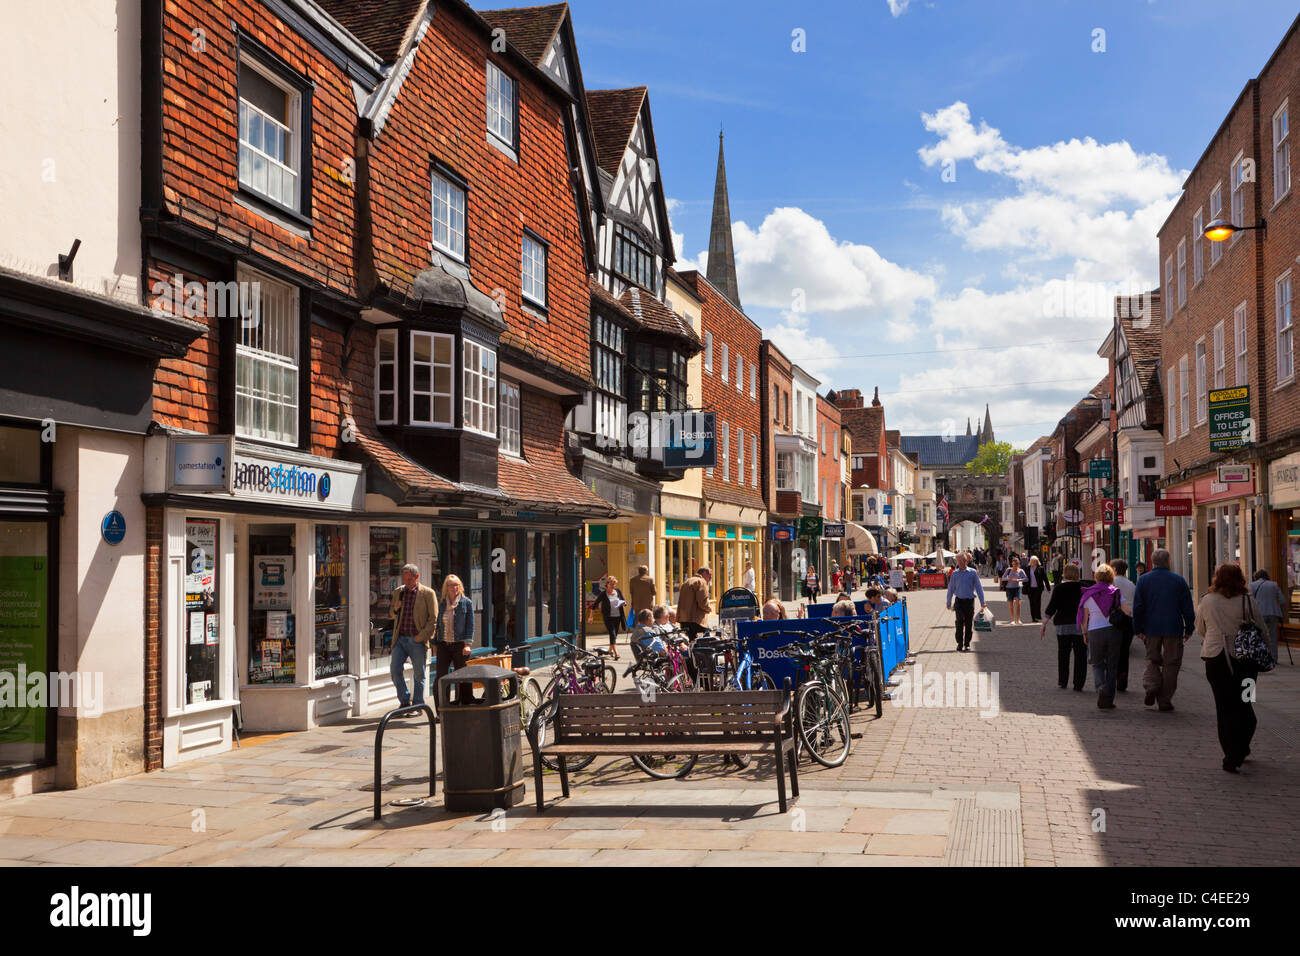 Shoppers in the High Street in Salisbury, Wiltshire, UK - Stock Image